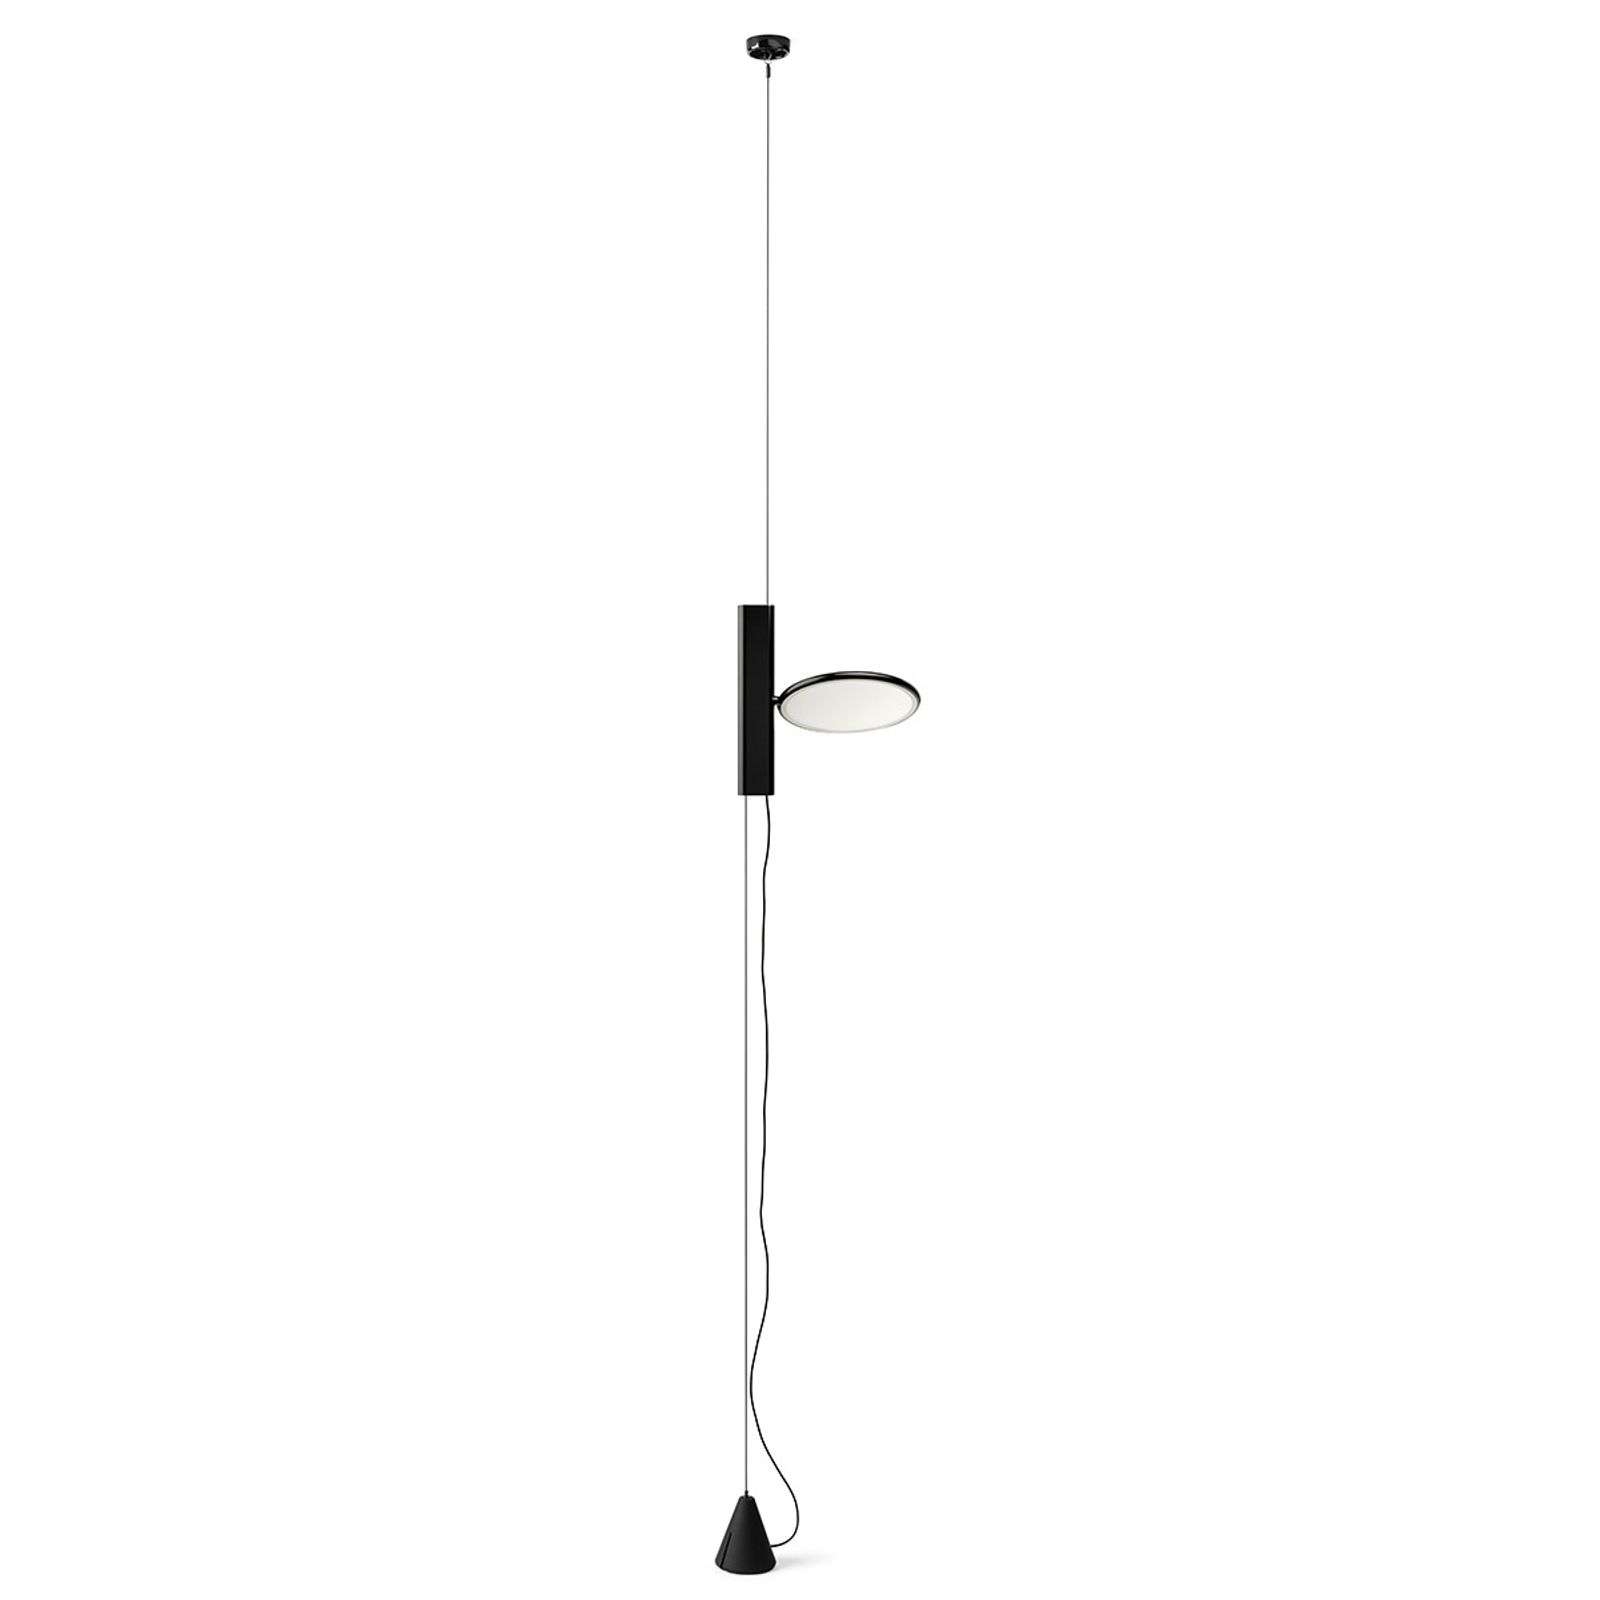 Suspension LED verticale OK en noir